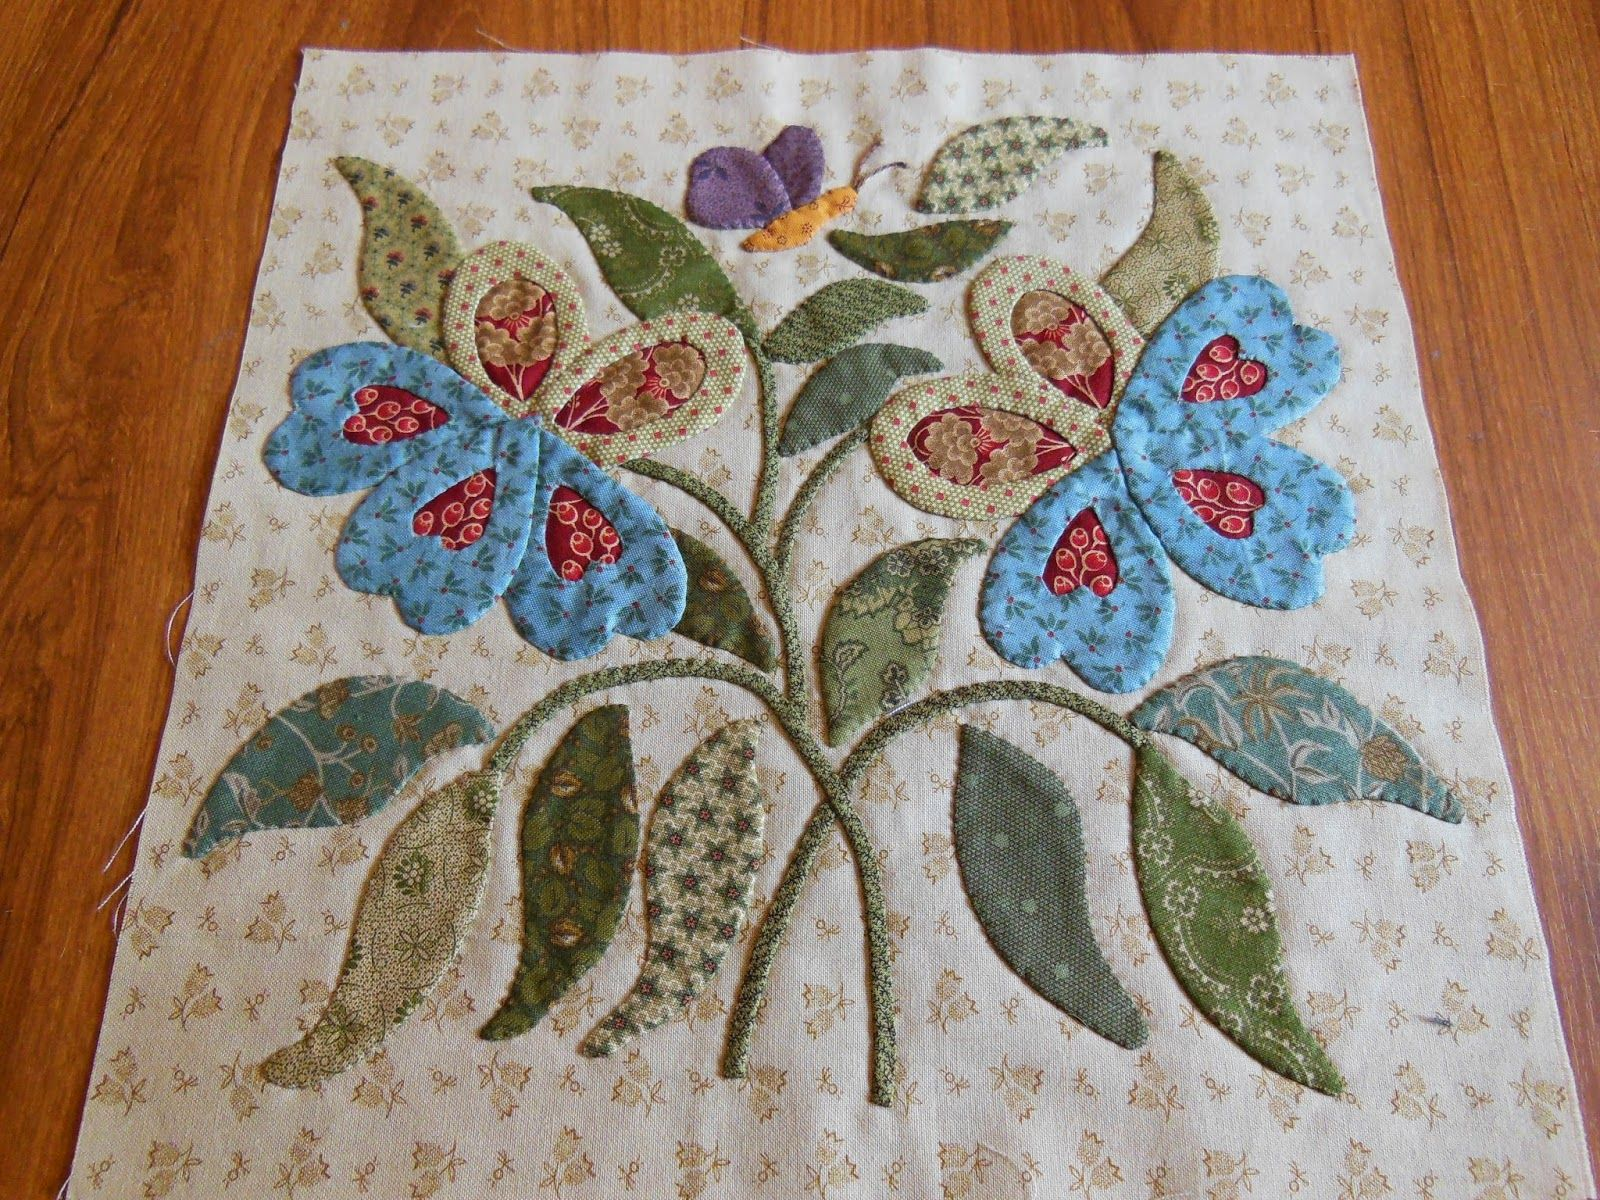 Quilting by celia: lynnes caswell quilt happy quilting caswell